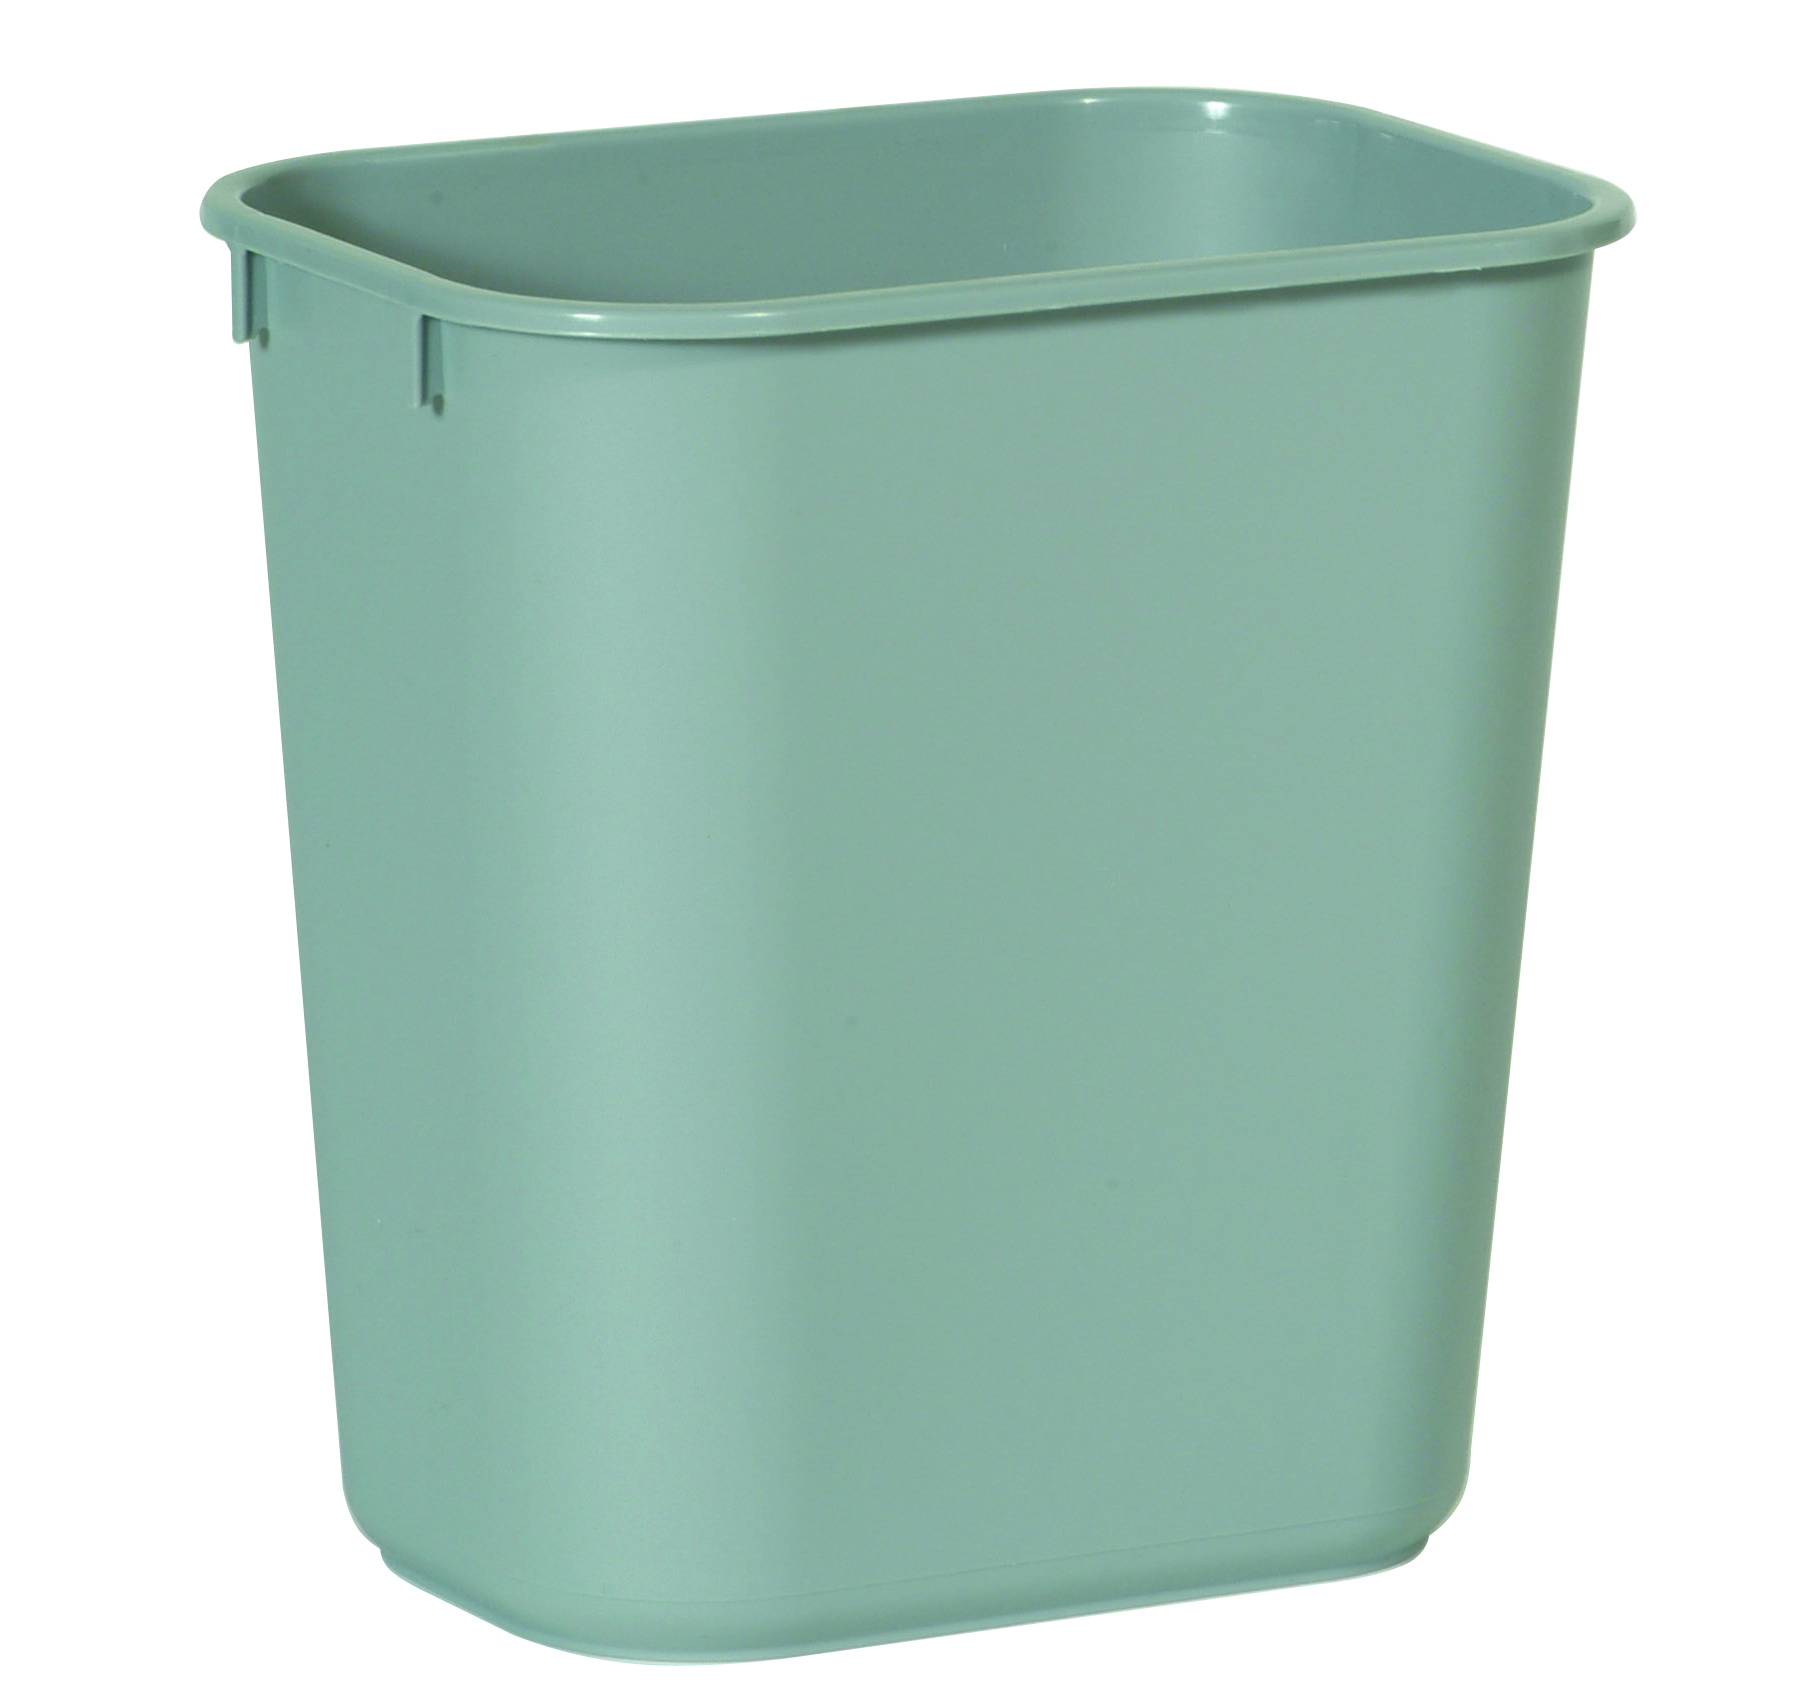 Waste Basket 12.9 liter rubbermaid small wastebasket | trashcans warehouse